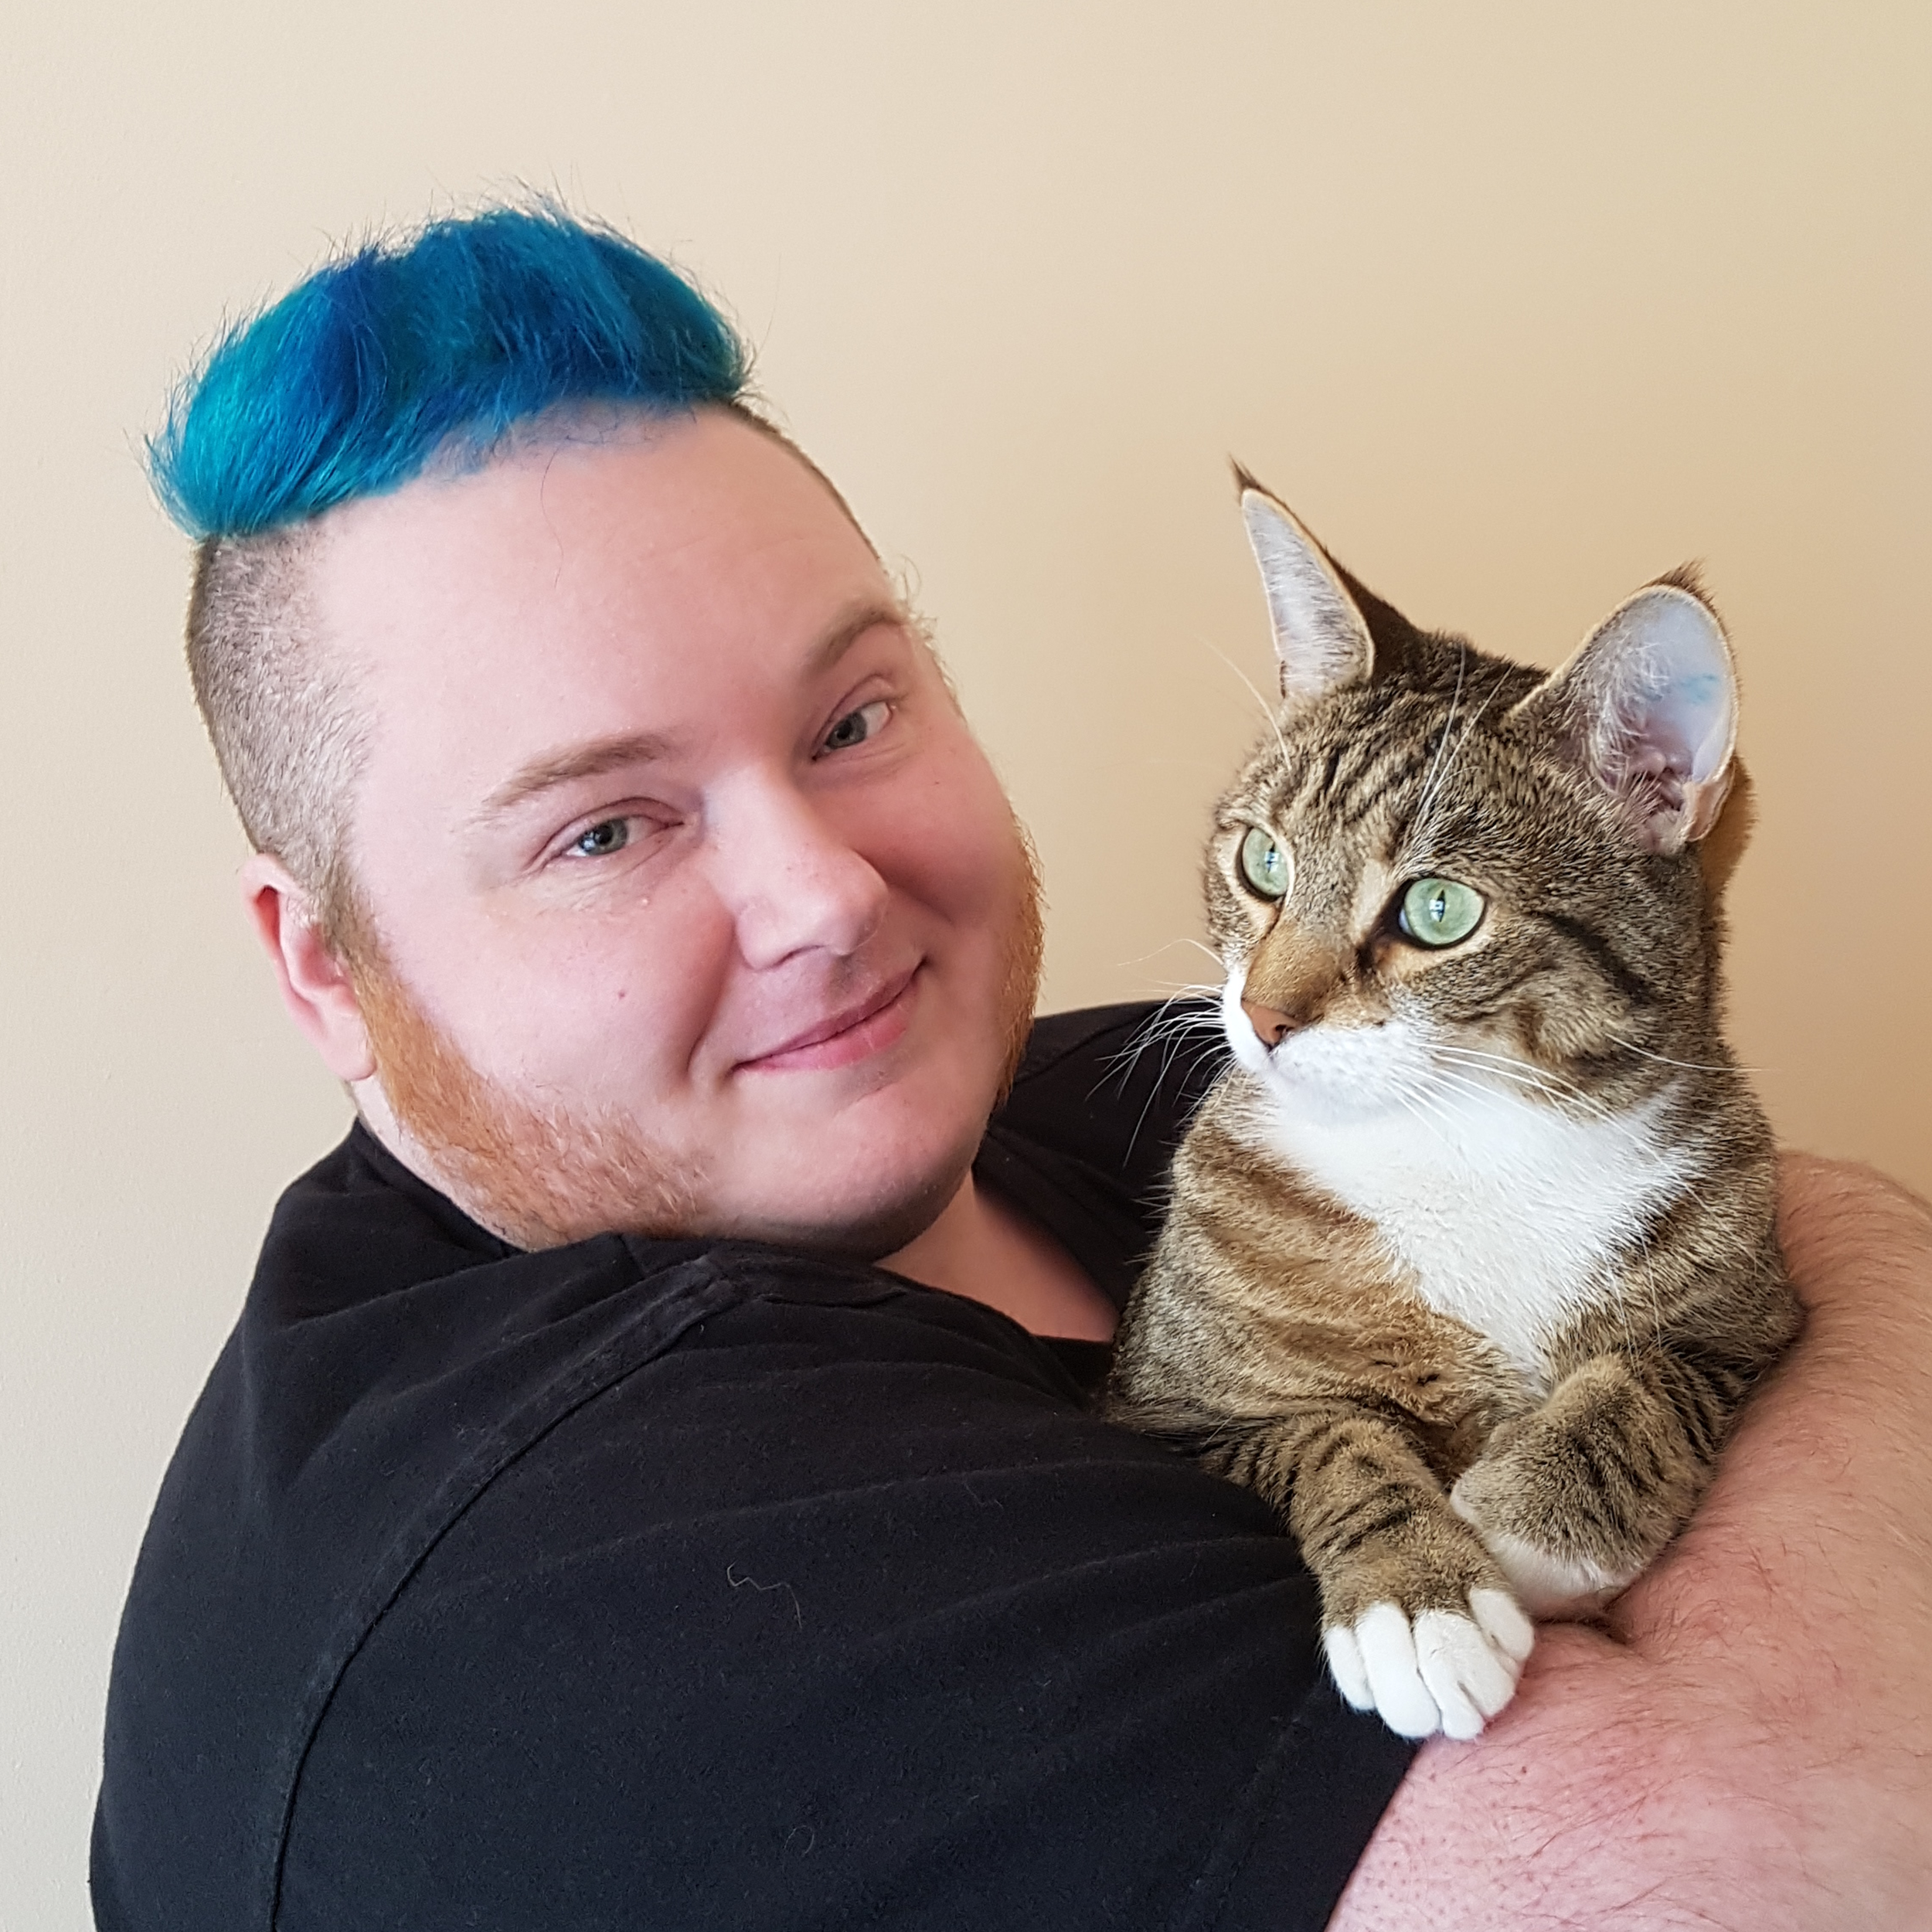 A photo of Erin Kyan, a white man with blue hair and ginger sideburns, holding a tabby cat.